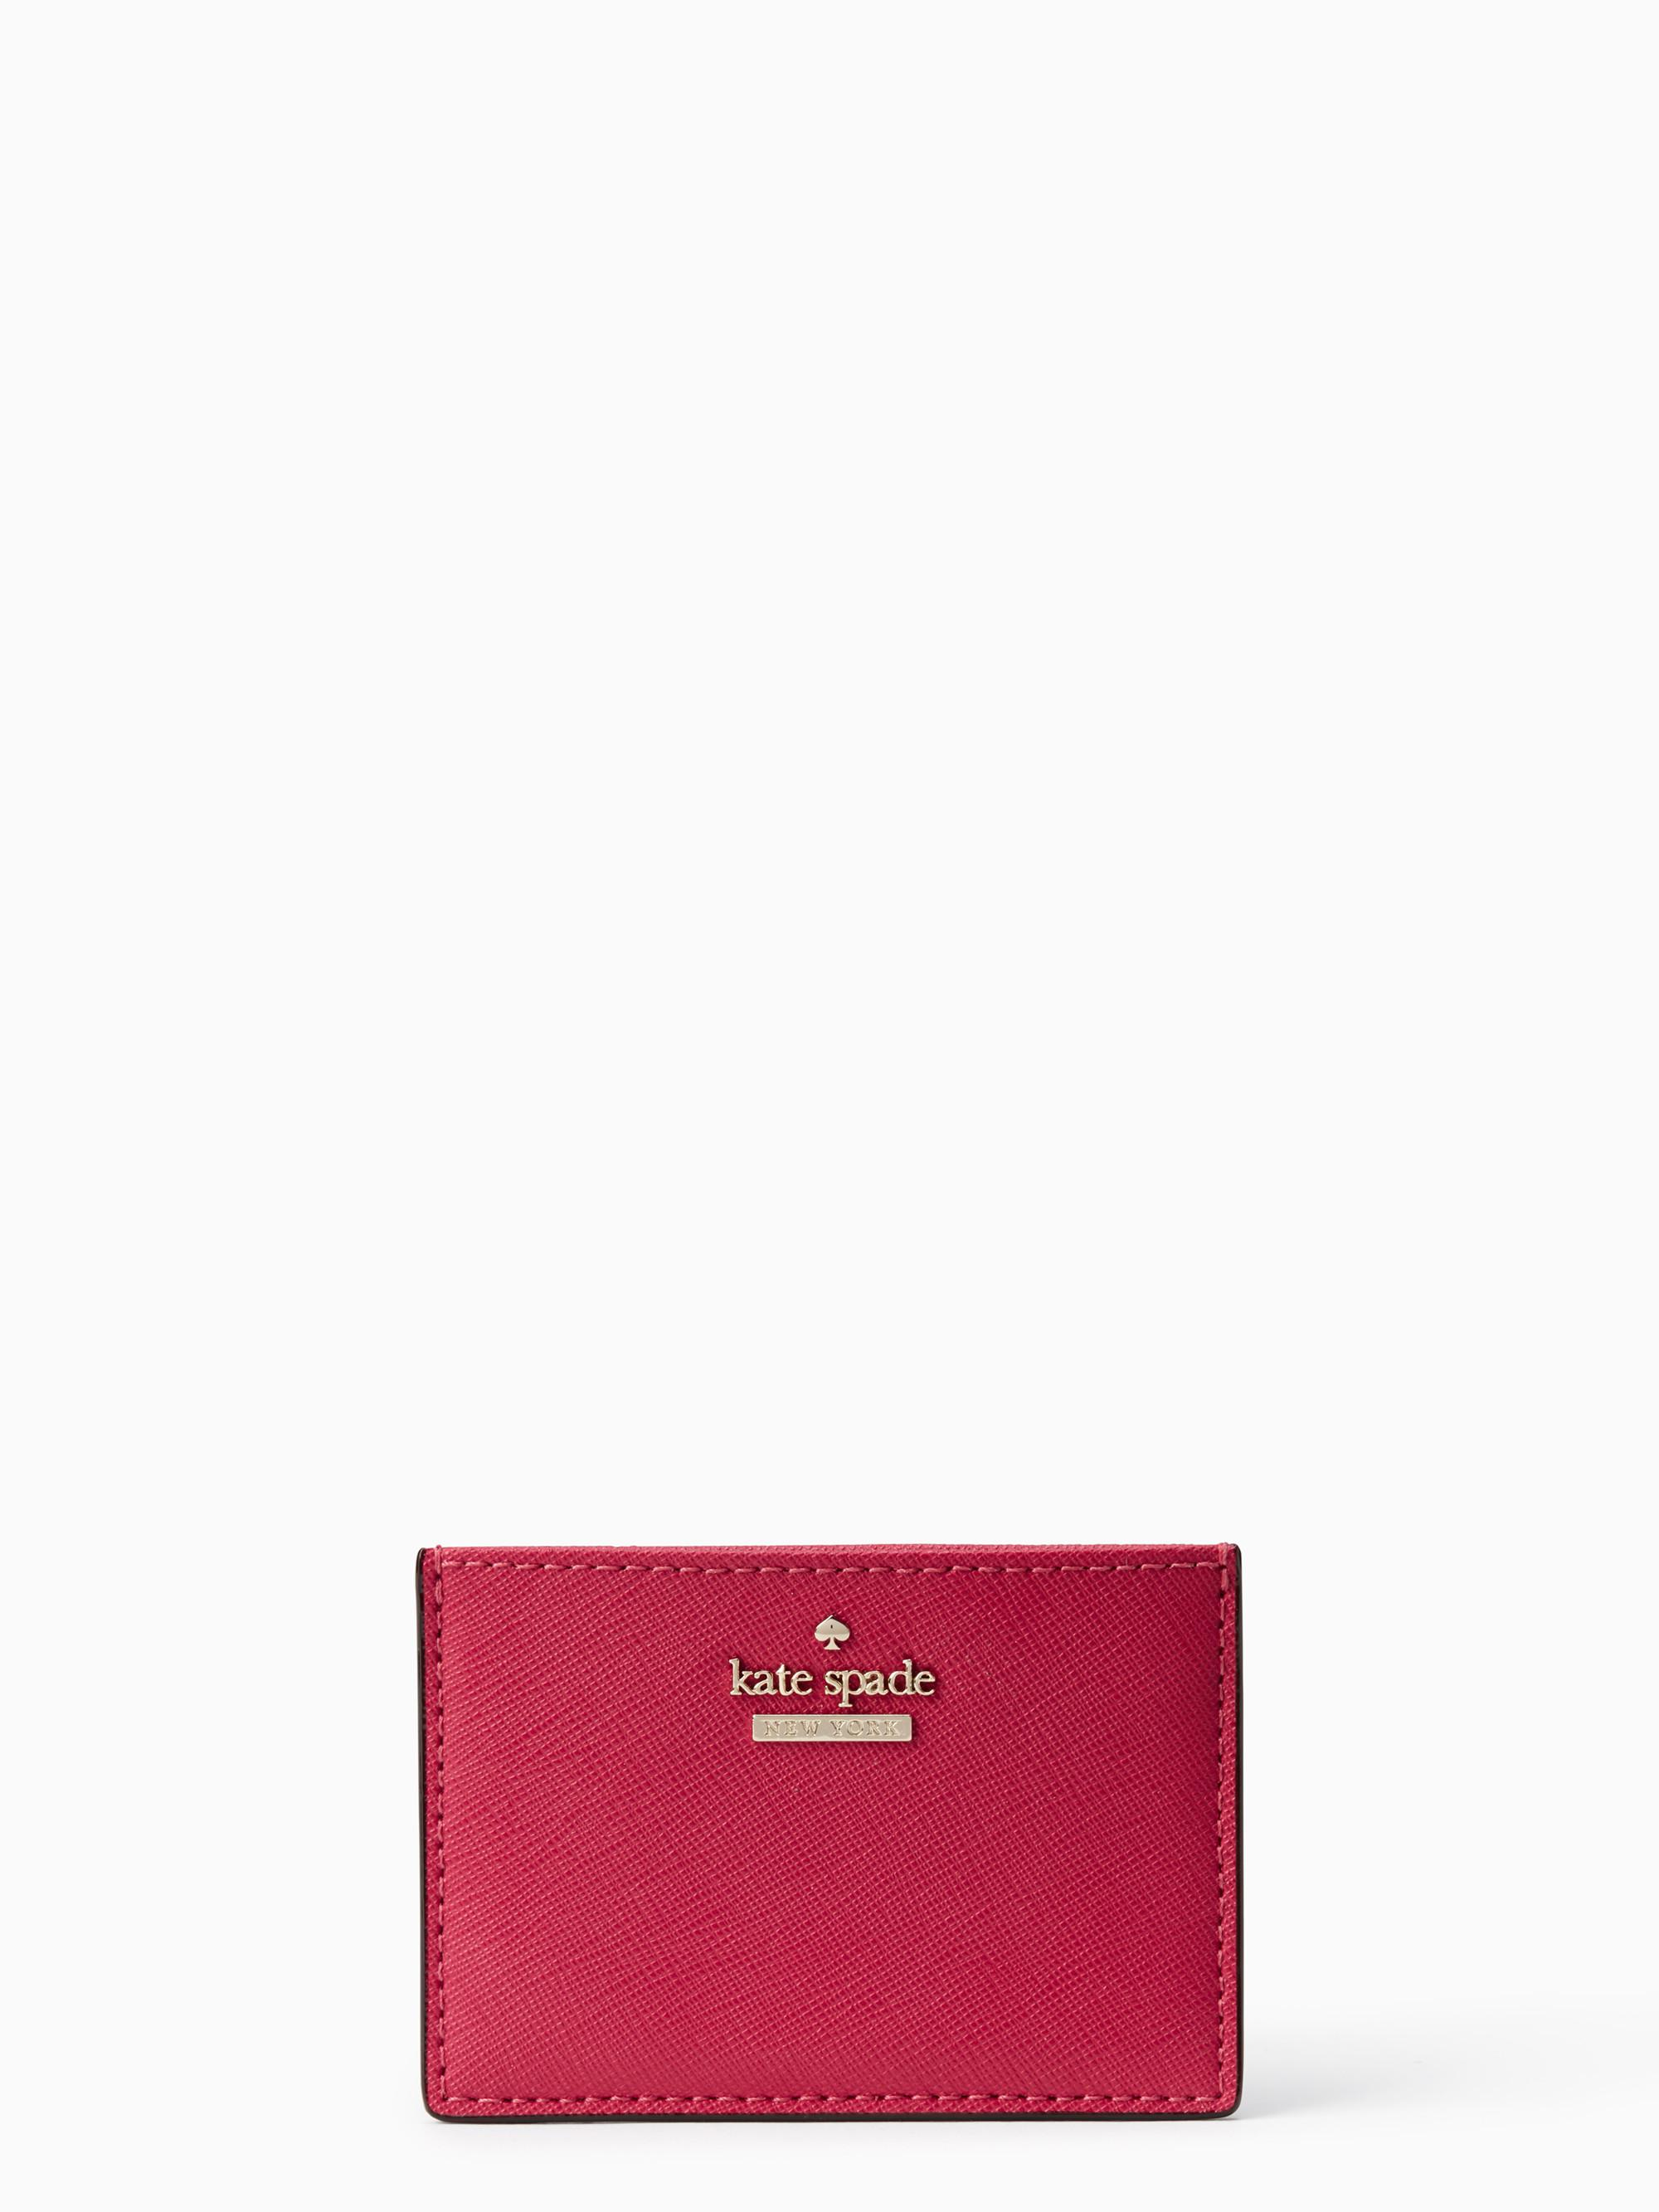 Kate spade Cameron Street Card Holder in Red